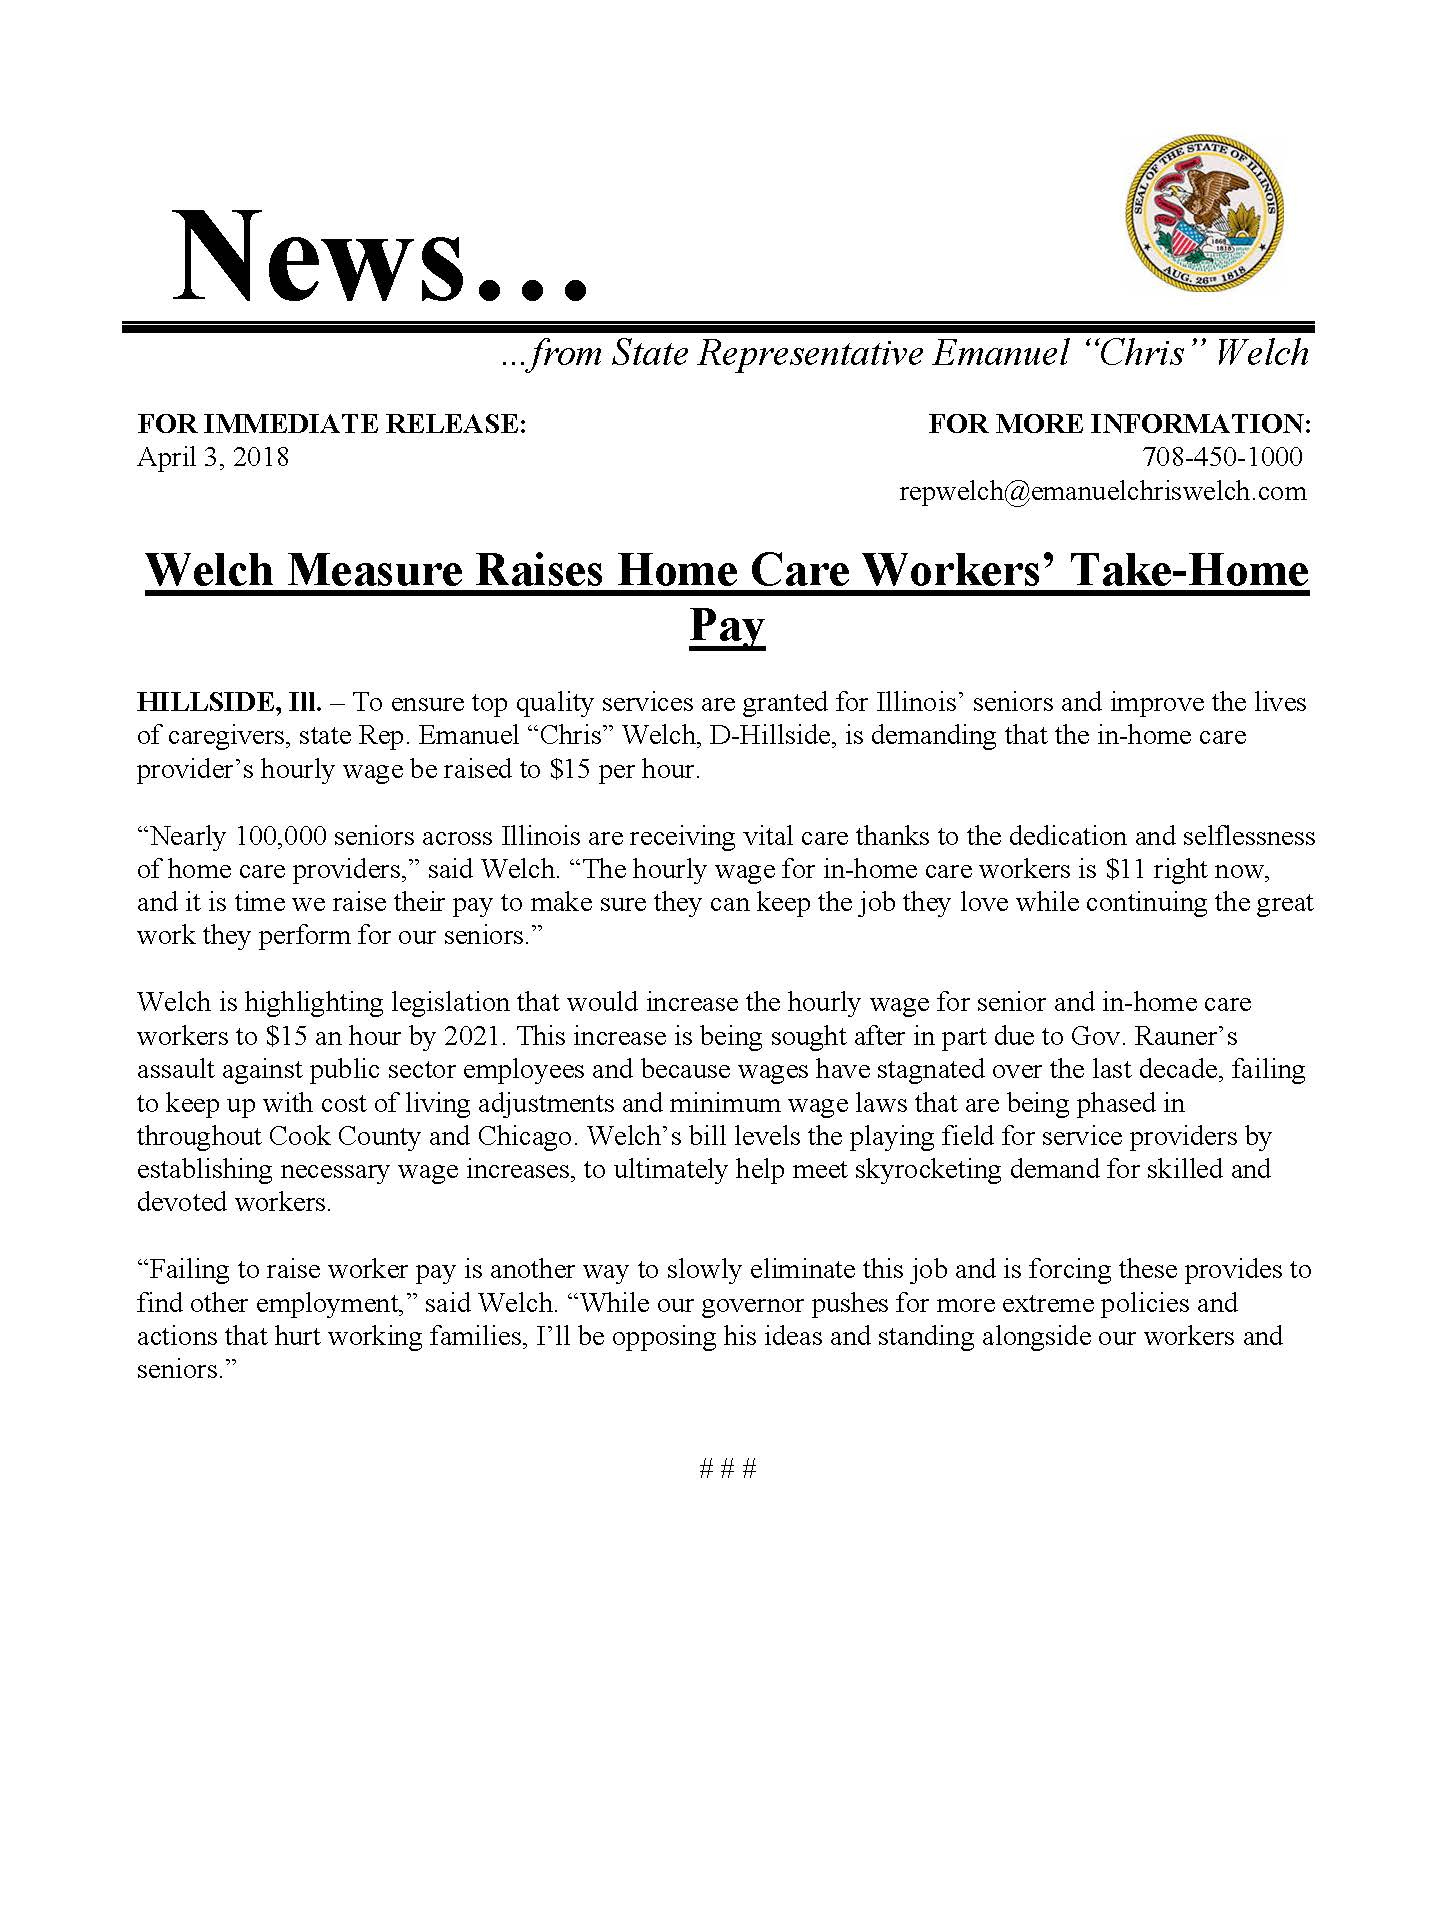 Welch Measure Raises Home Care Workers' Take-Home Pay  (April 3, 2018)